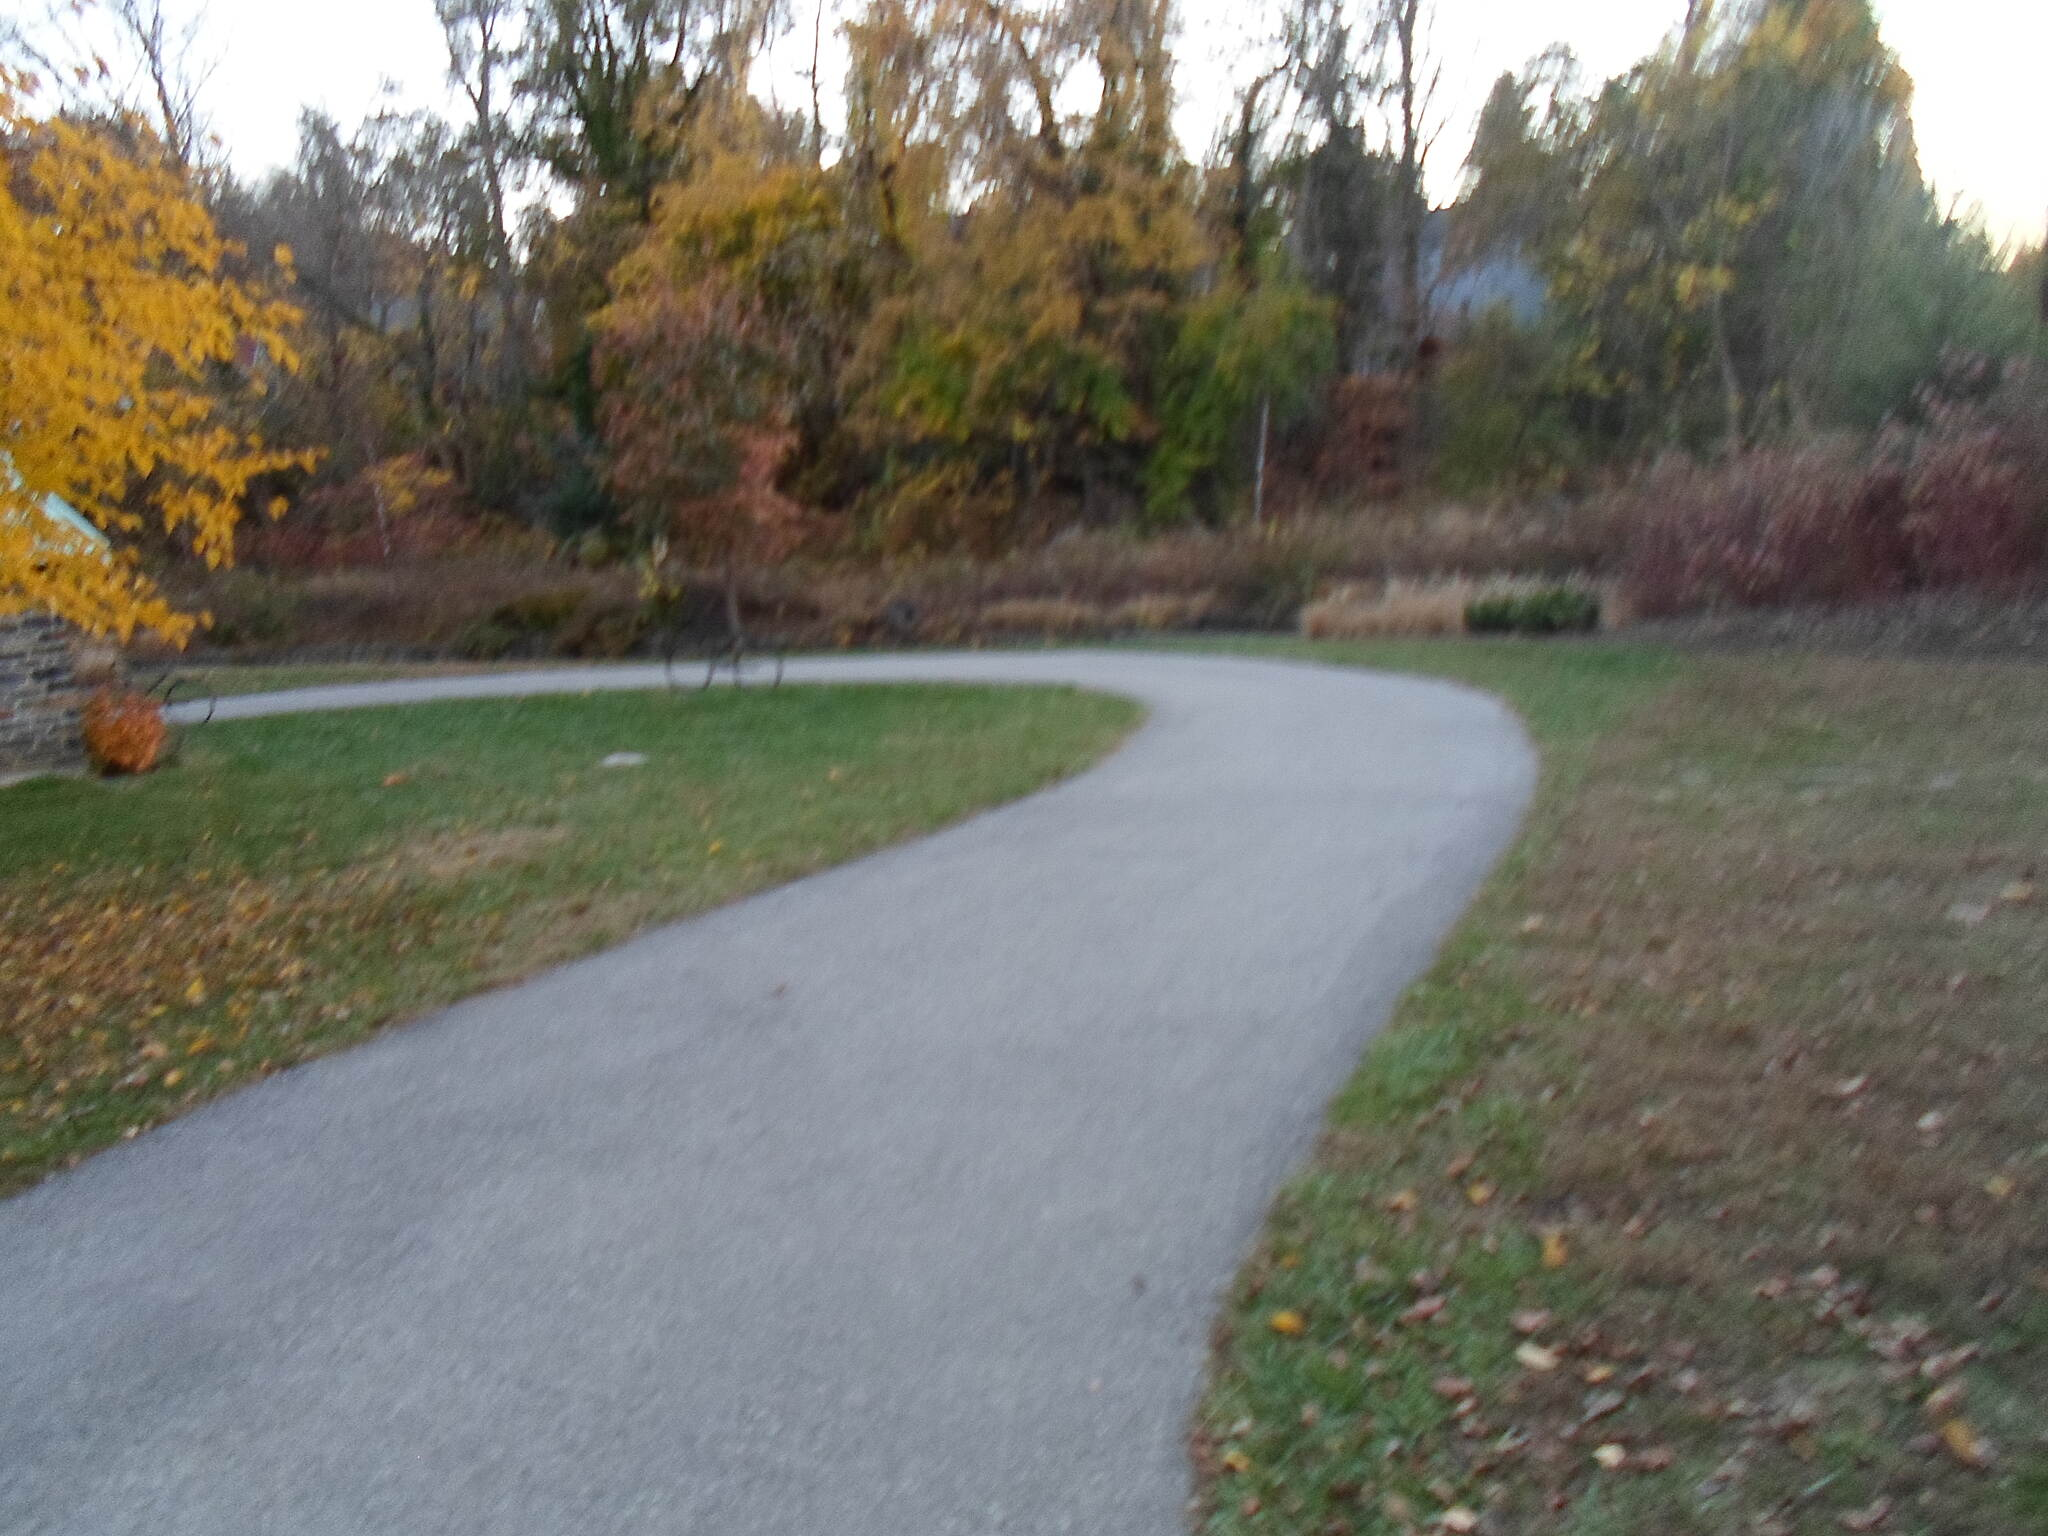 Cynwyd Heritage Trail Cynwyd Heritage Trail Looking down the access path that connects Lower Merion Township to the trail. Taken Nov. 2015.